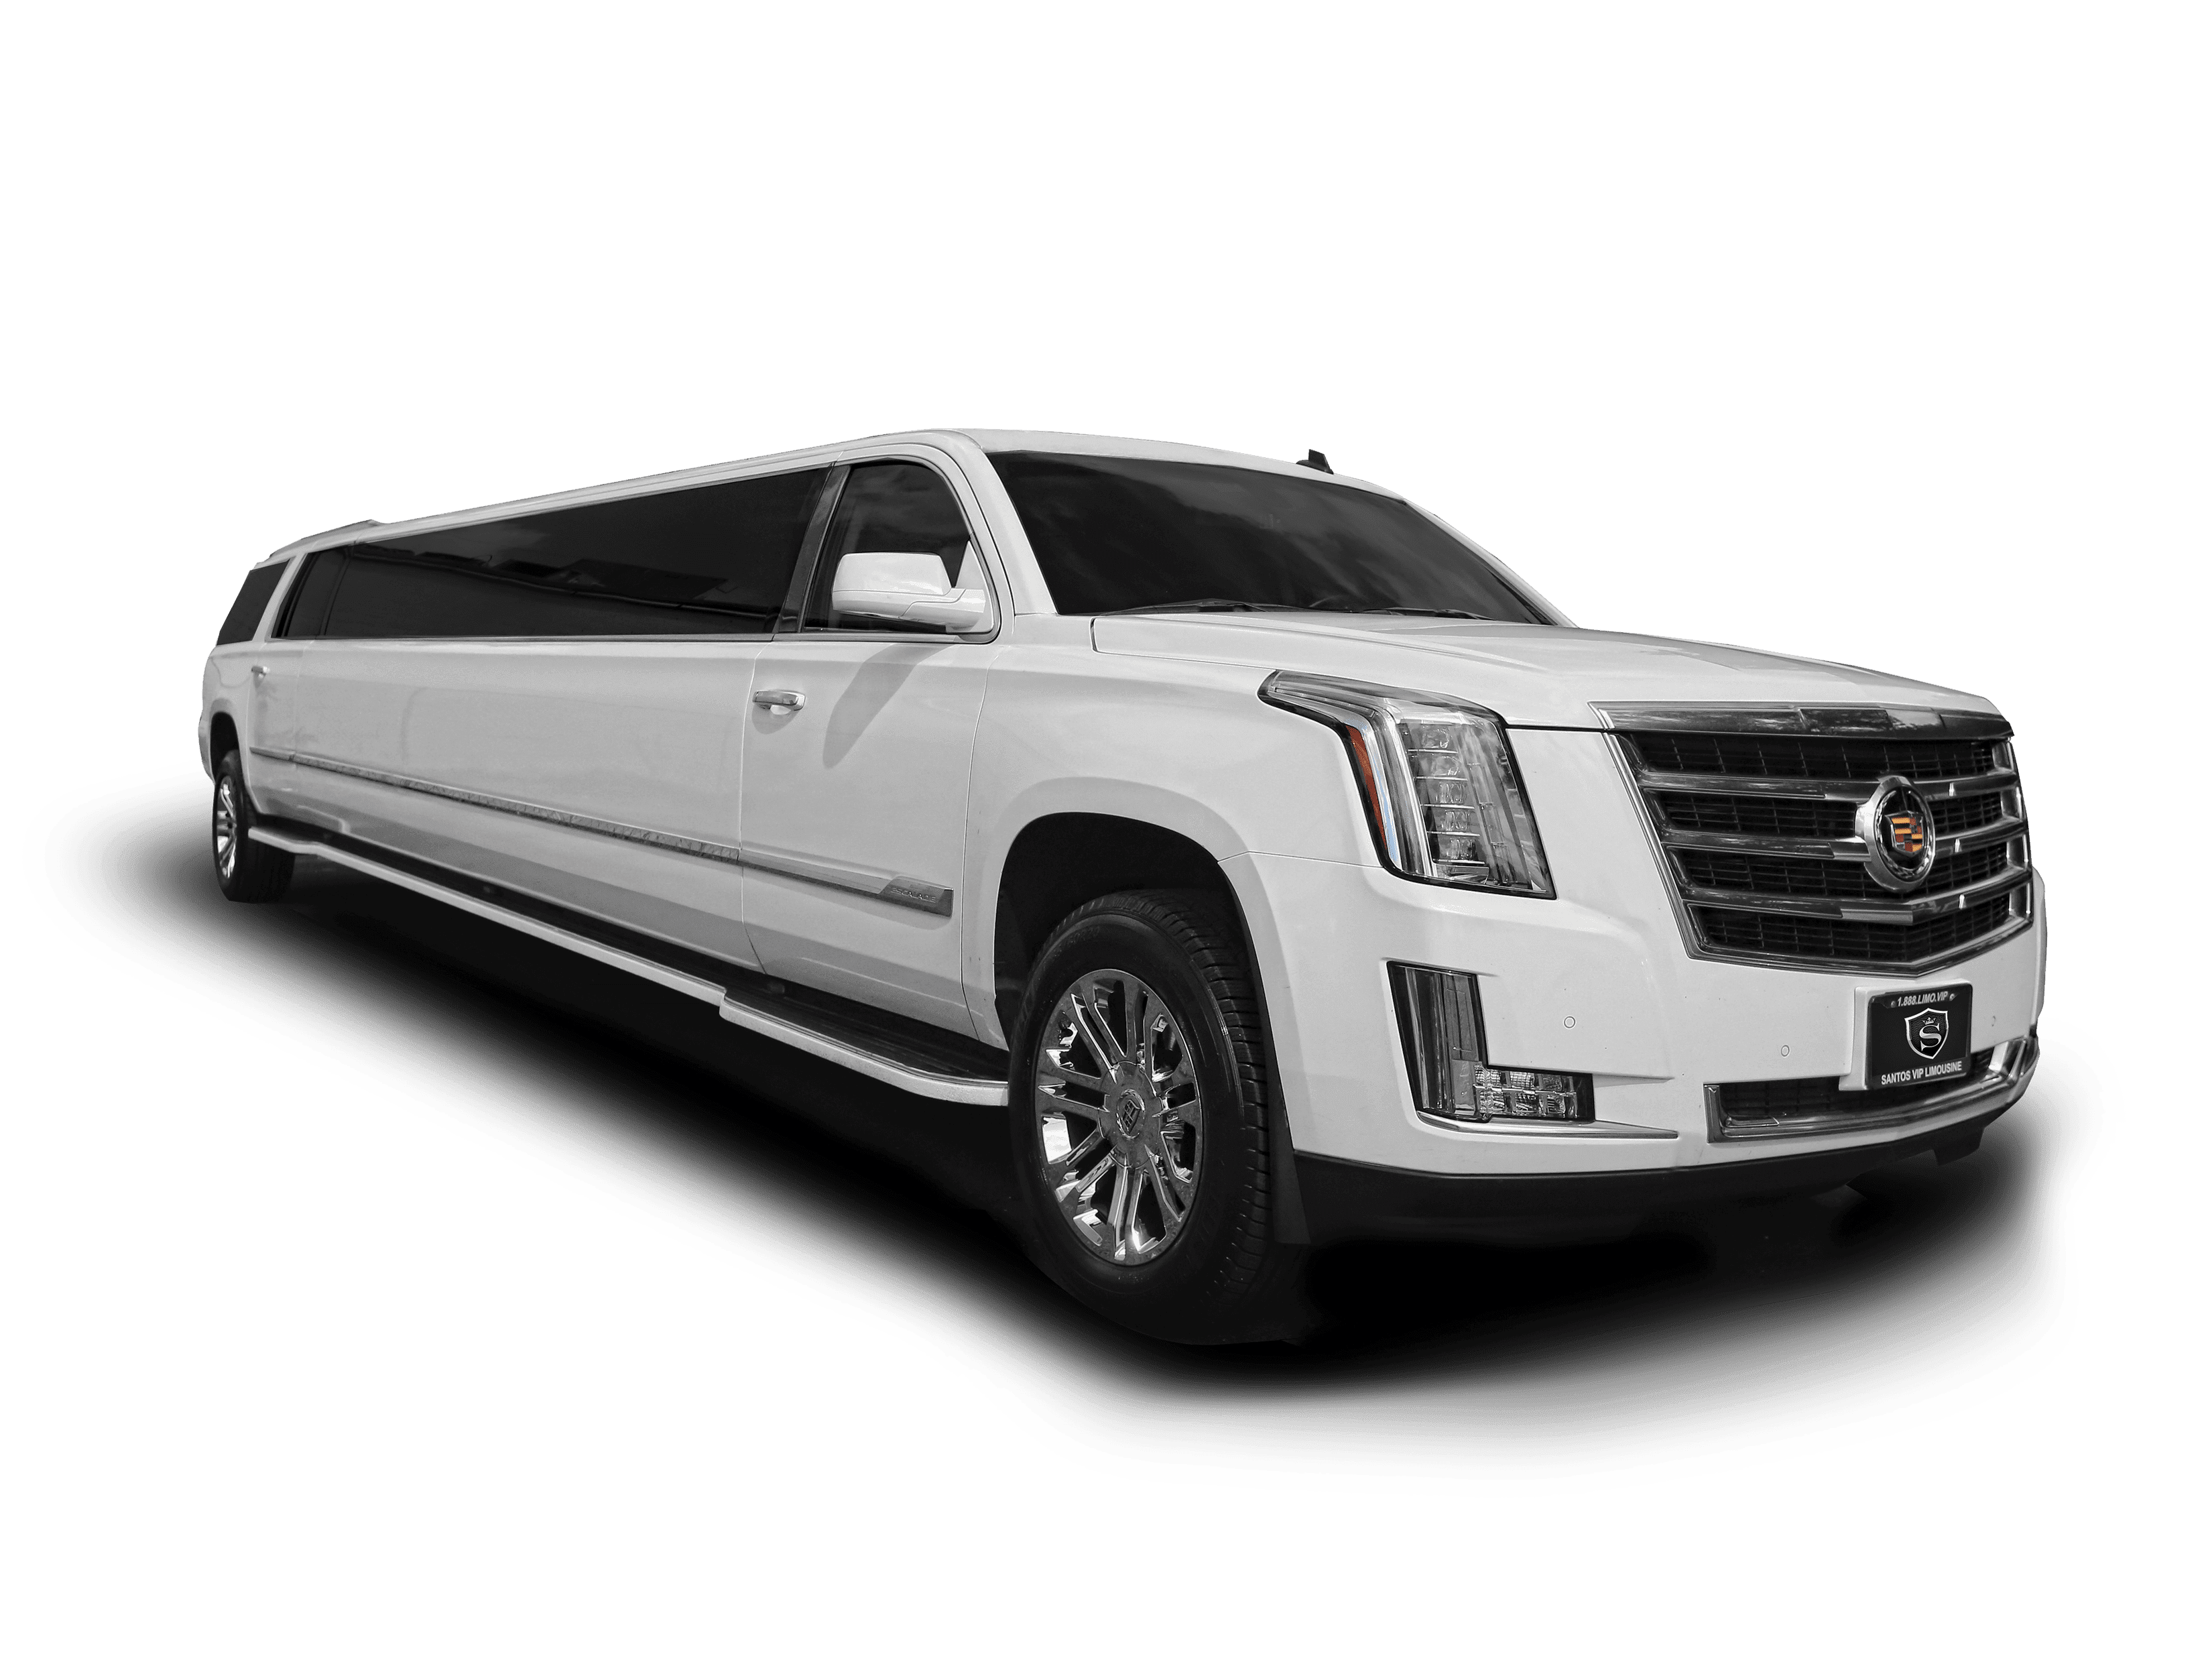 Cadillac Escalade ESV limousine for New York City Holiday Light Tour